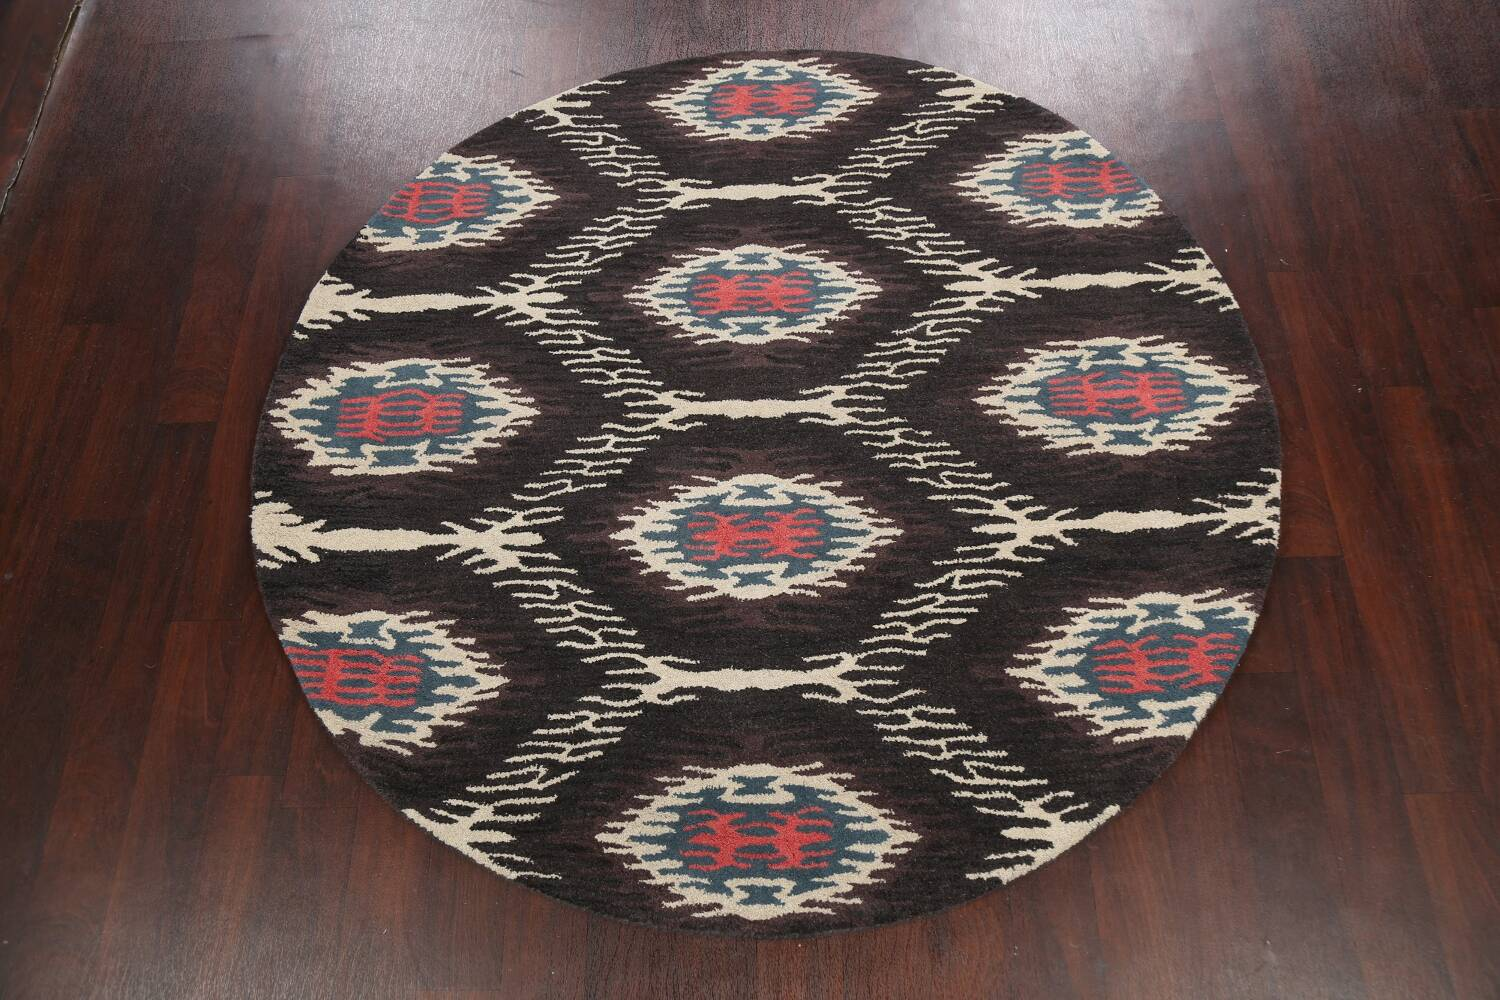 Abstract Round Rug 6x6 image 2